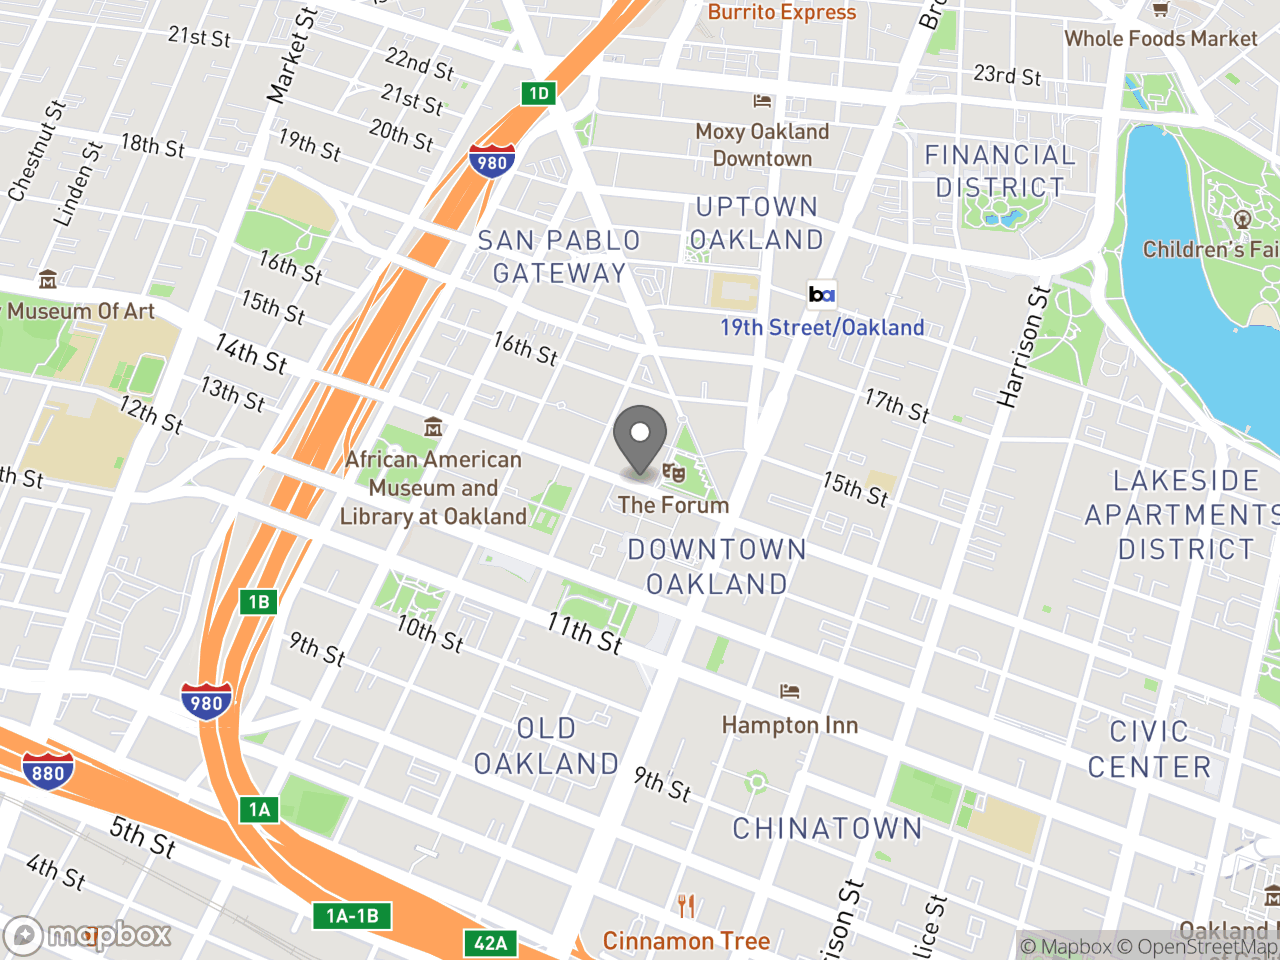 Map location for Mayor's Commission on Persons with Disabilities, located at 1 Frank H Ogawa Plaza in Downtown Oakland, CA 94612